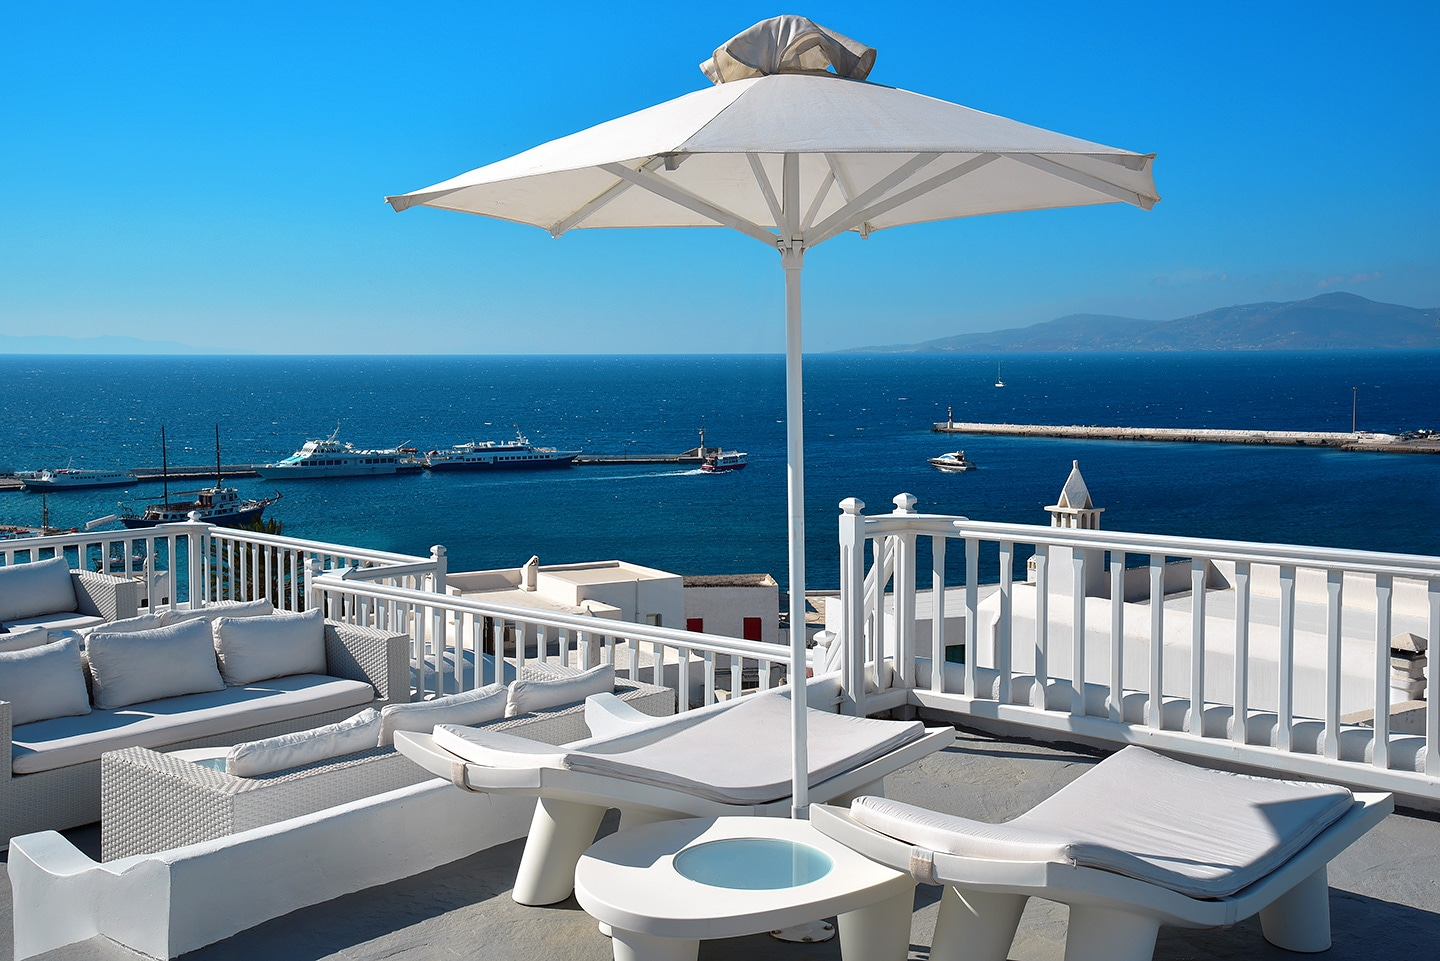 Best Island Beaches For Partying Mykonos St Barts: Petasos Town Mykonos,Exceptionally Situated In The Center